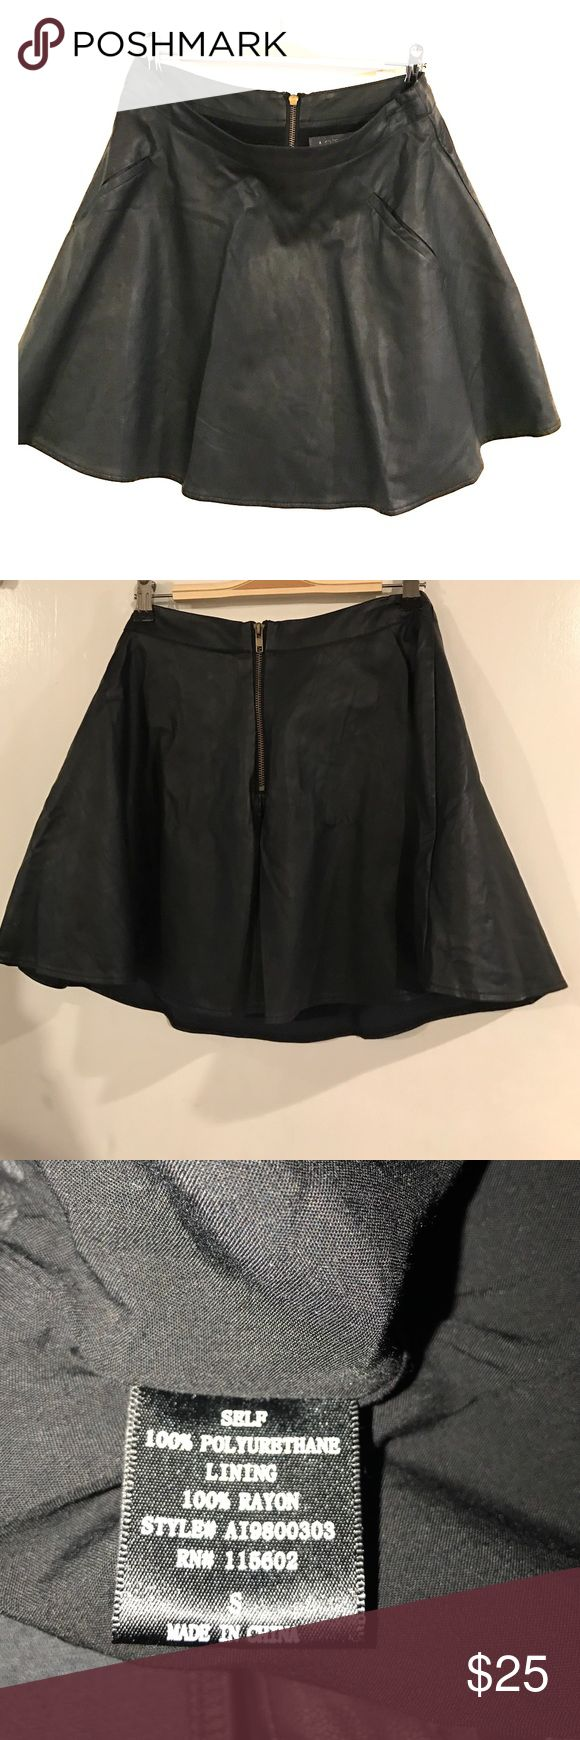 Faux leather mini skater skirt Black faux leather mini skater skirt with back zipper. Worn once. Lined ASTR Skirts Circle & Skater